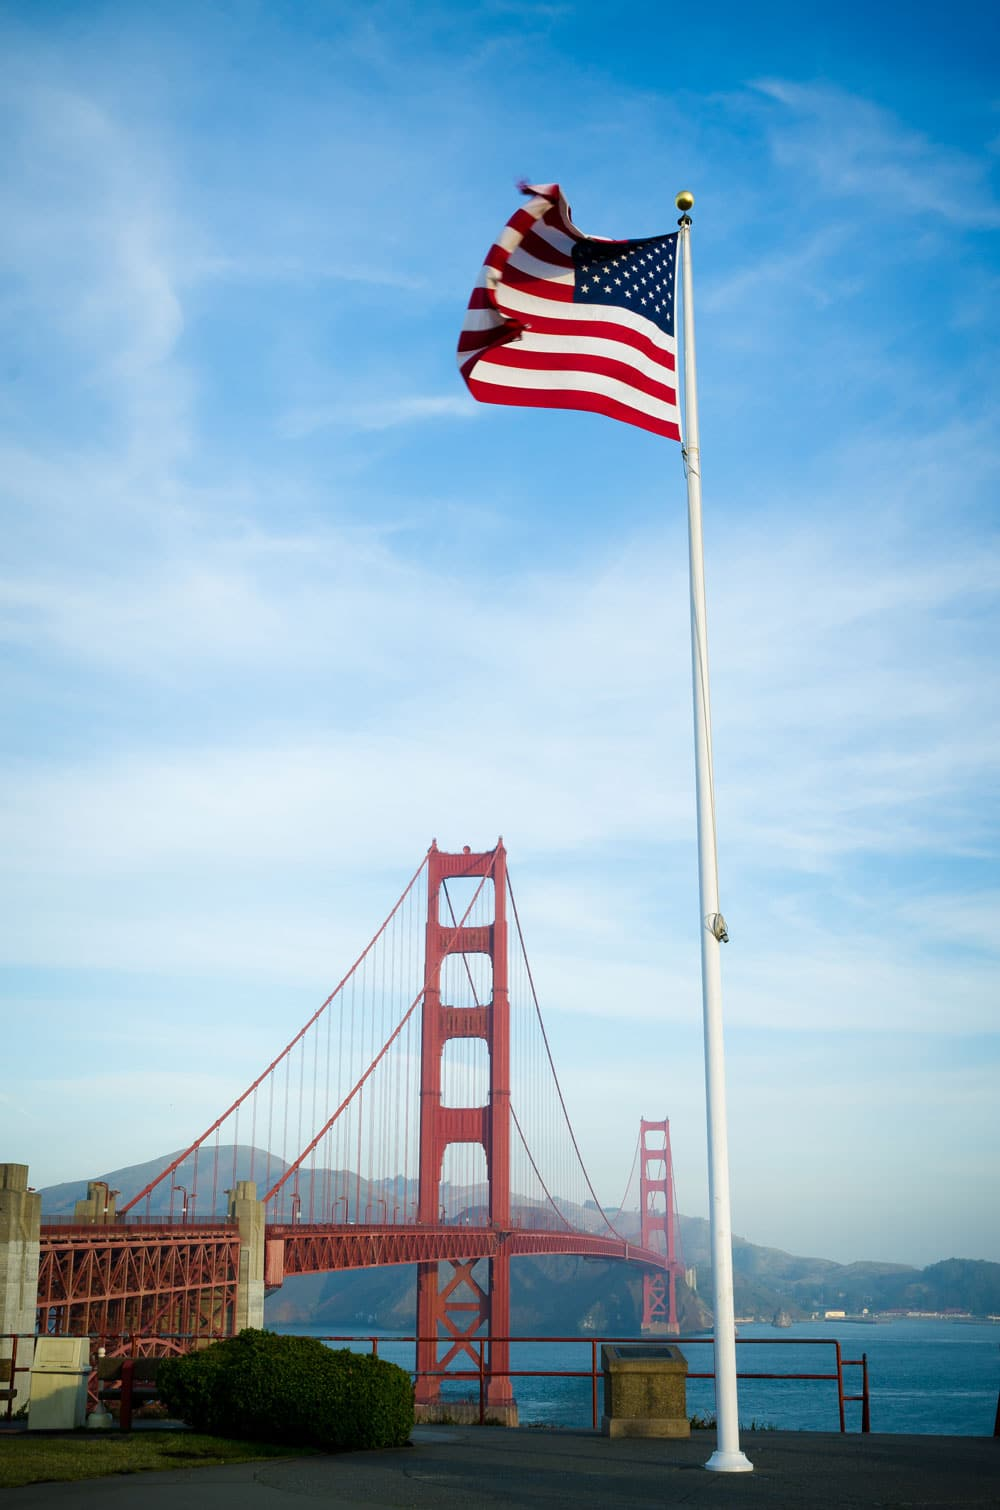 Golden Gate Bridge in San Francisco California and US flag.